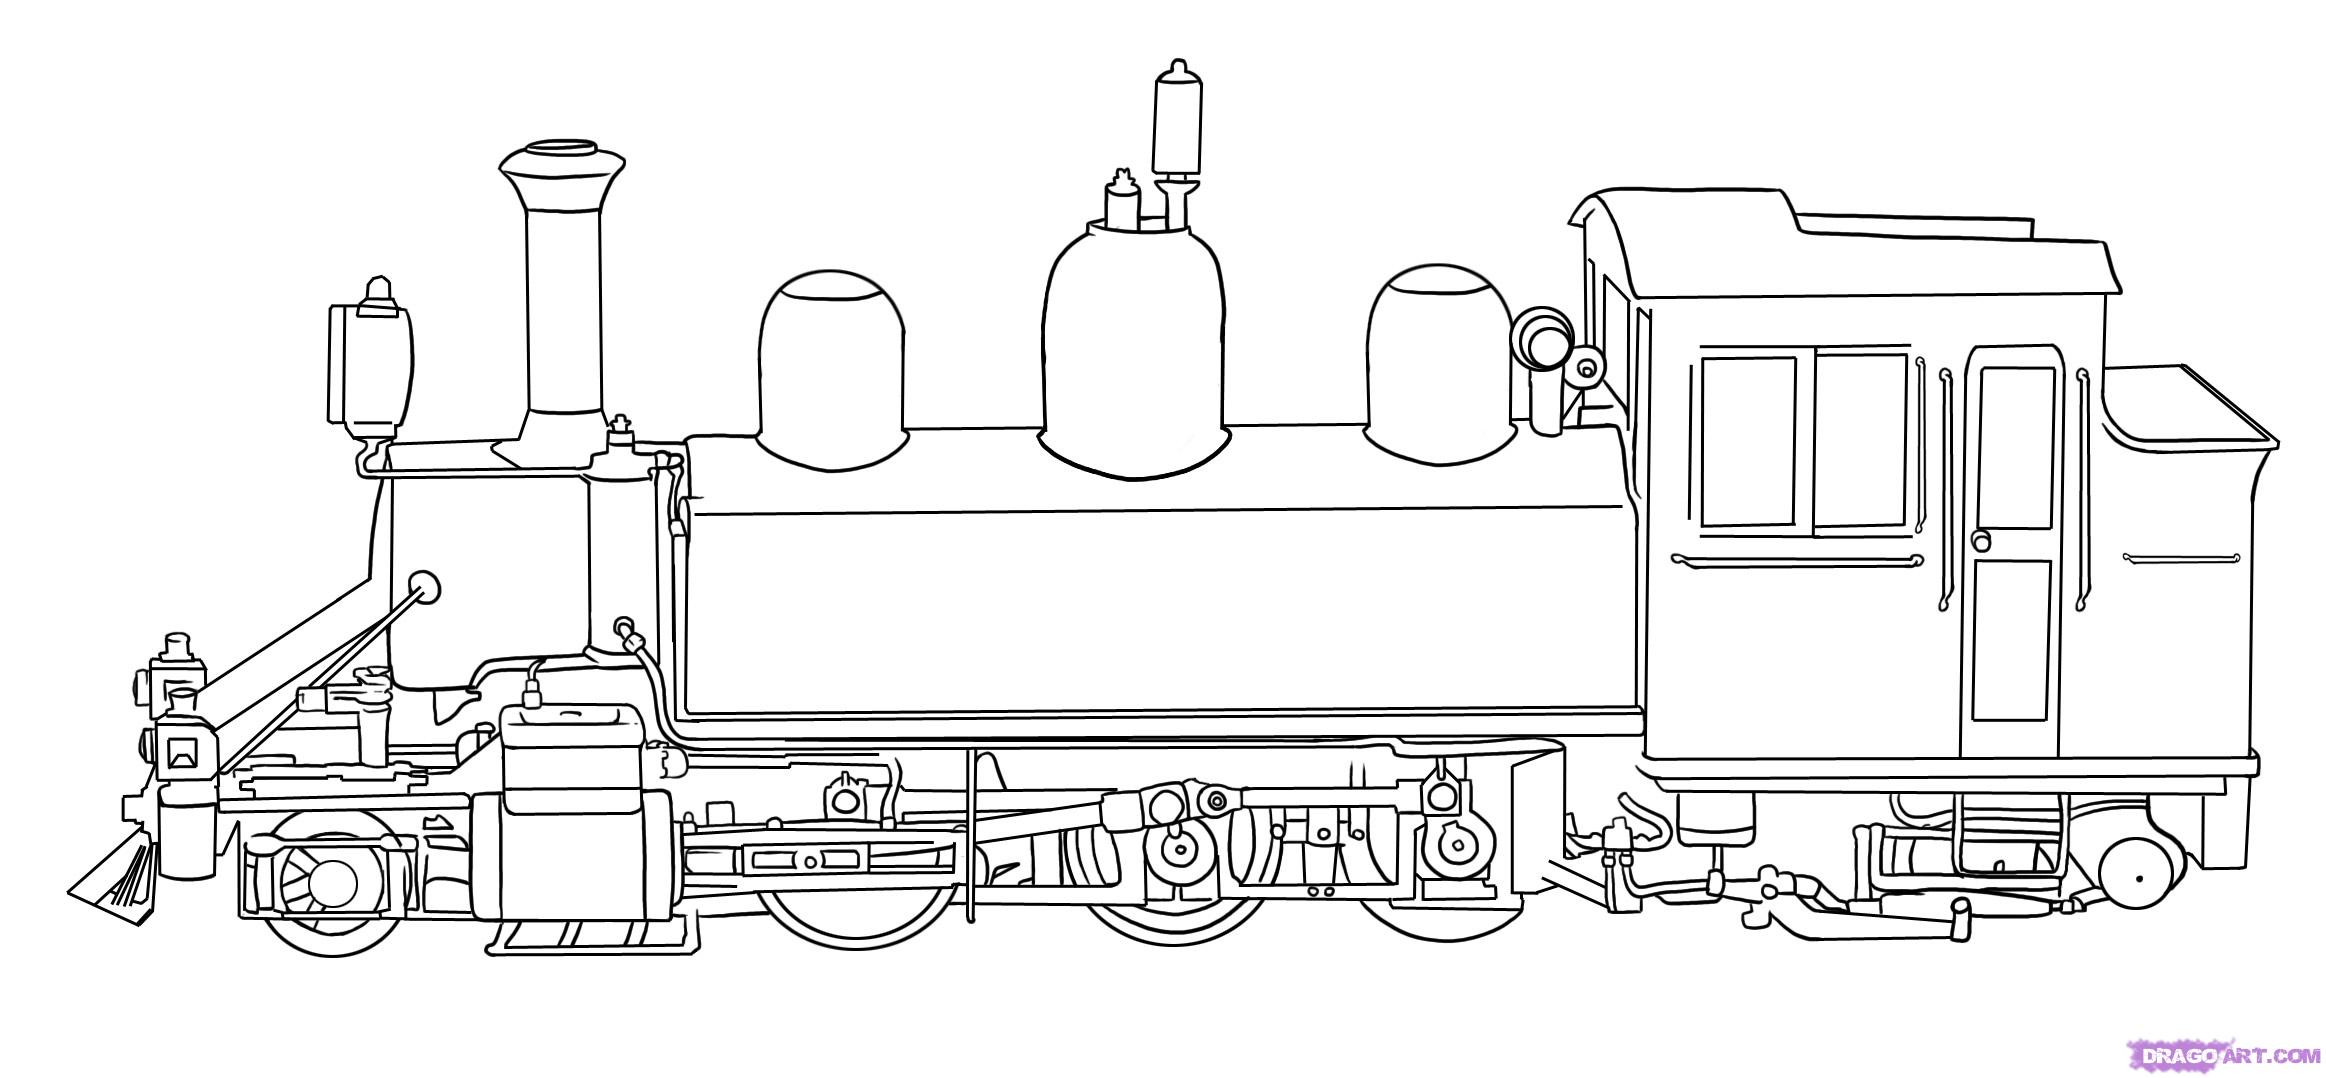 printable coloring pages trains train printable coloring pages train coloring pages coloring printable trains pages